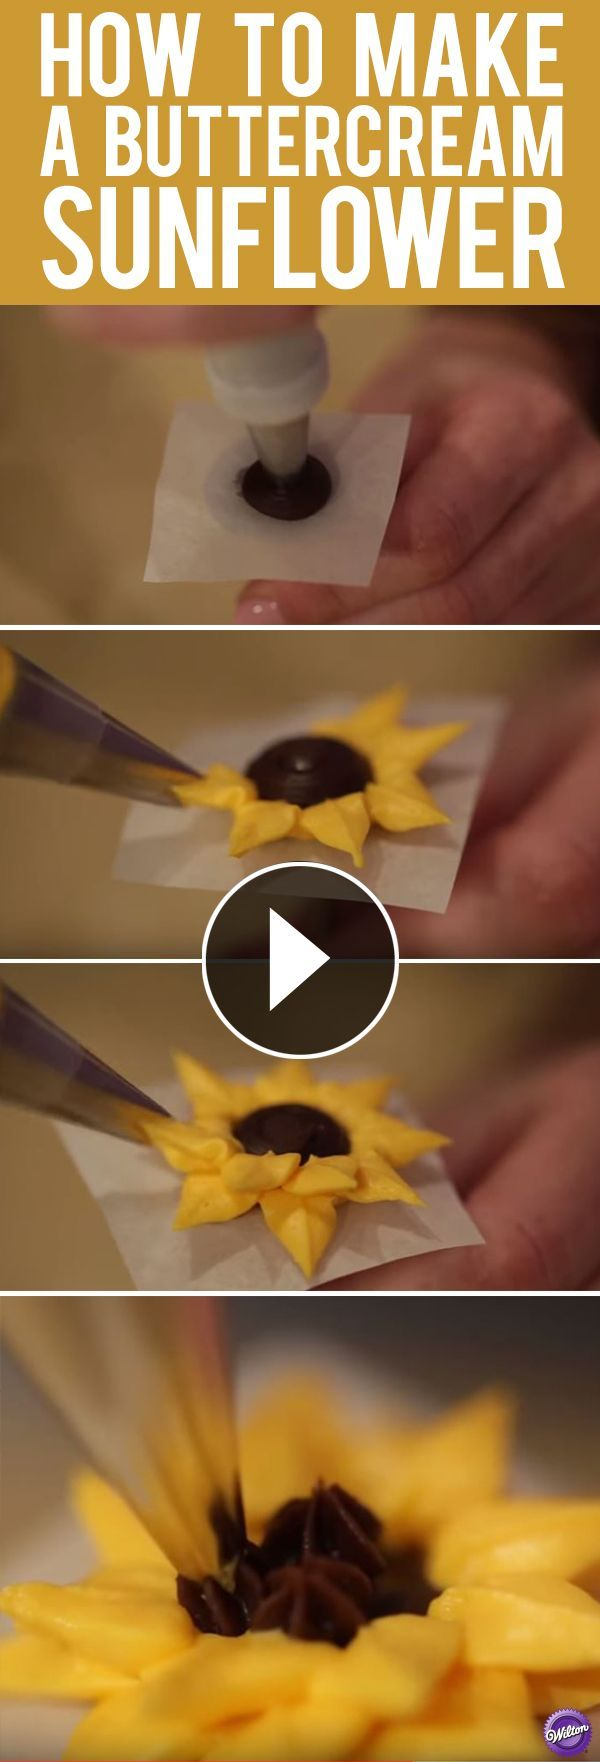 Learn how easy it is to make a buttercream sunflower. This simple flower looks adorable topped on top of a cake or cupcake.